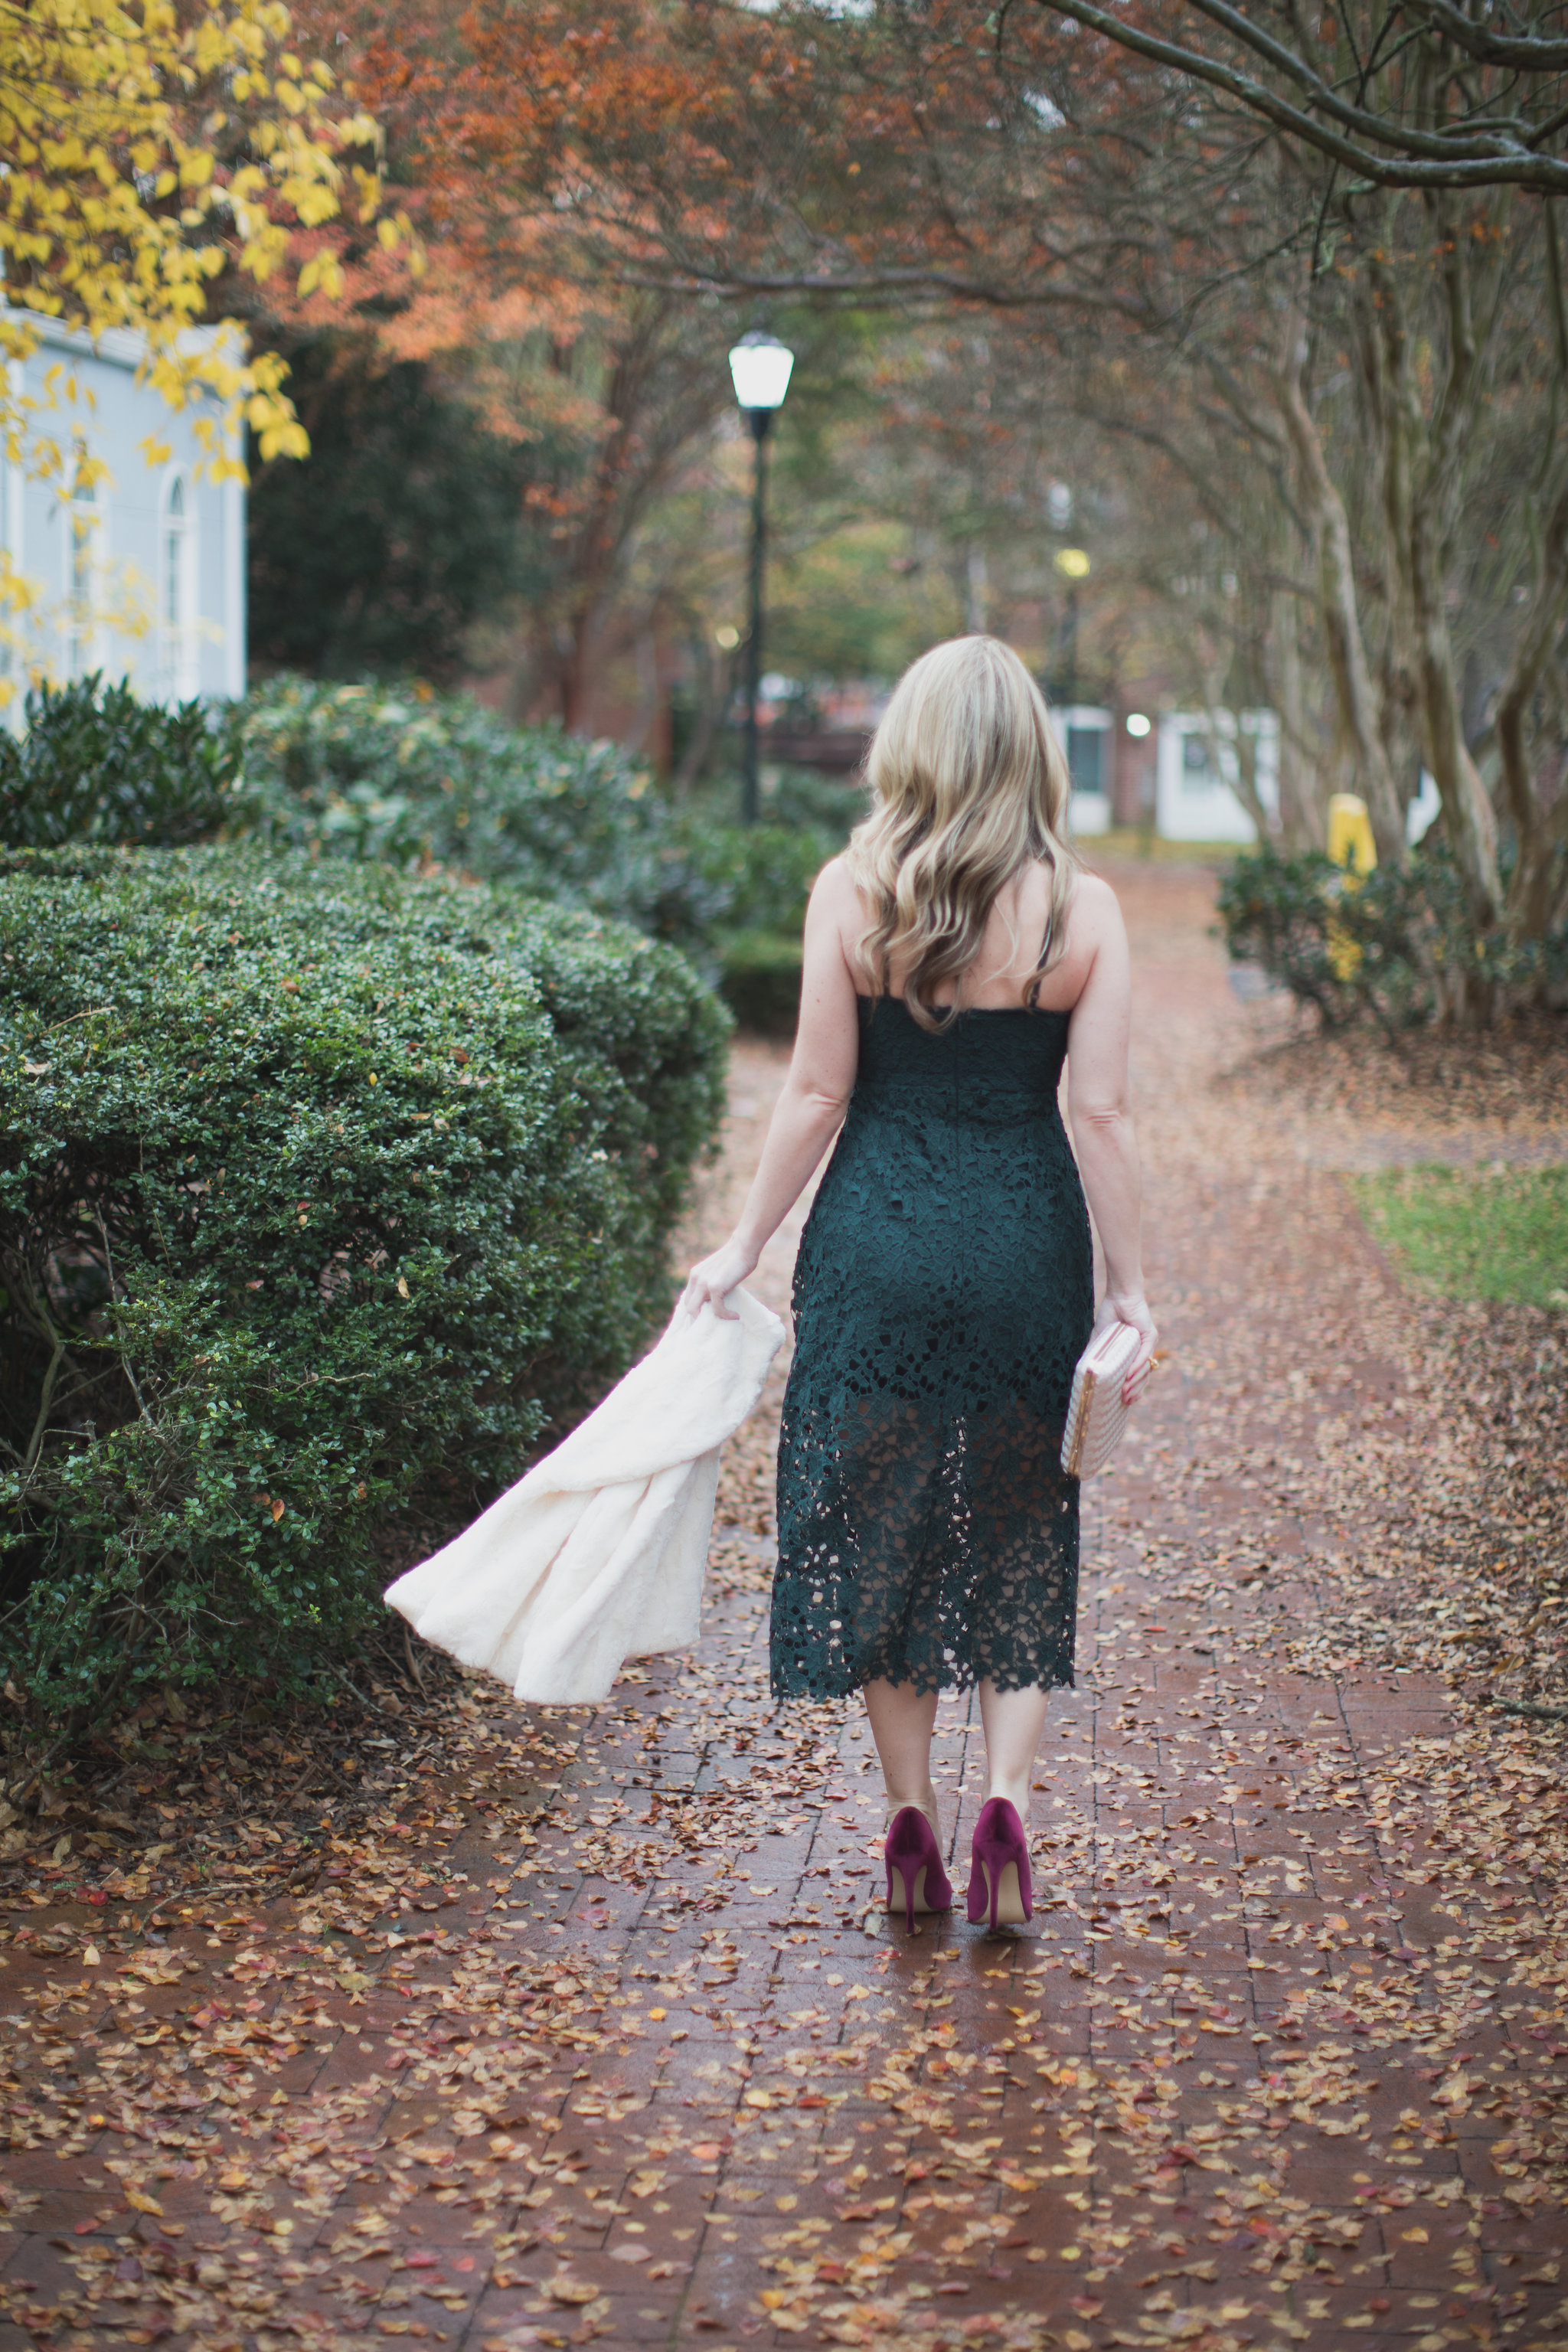 The perfect holiday dress under $100 on ECW today! - The Perfect Holiday Dress under $100 by North Carolina fashion blogger Every Chic Way